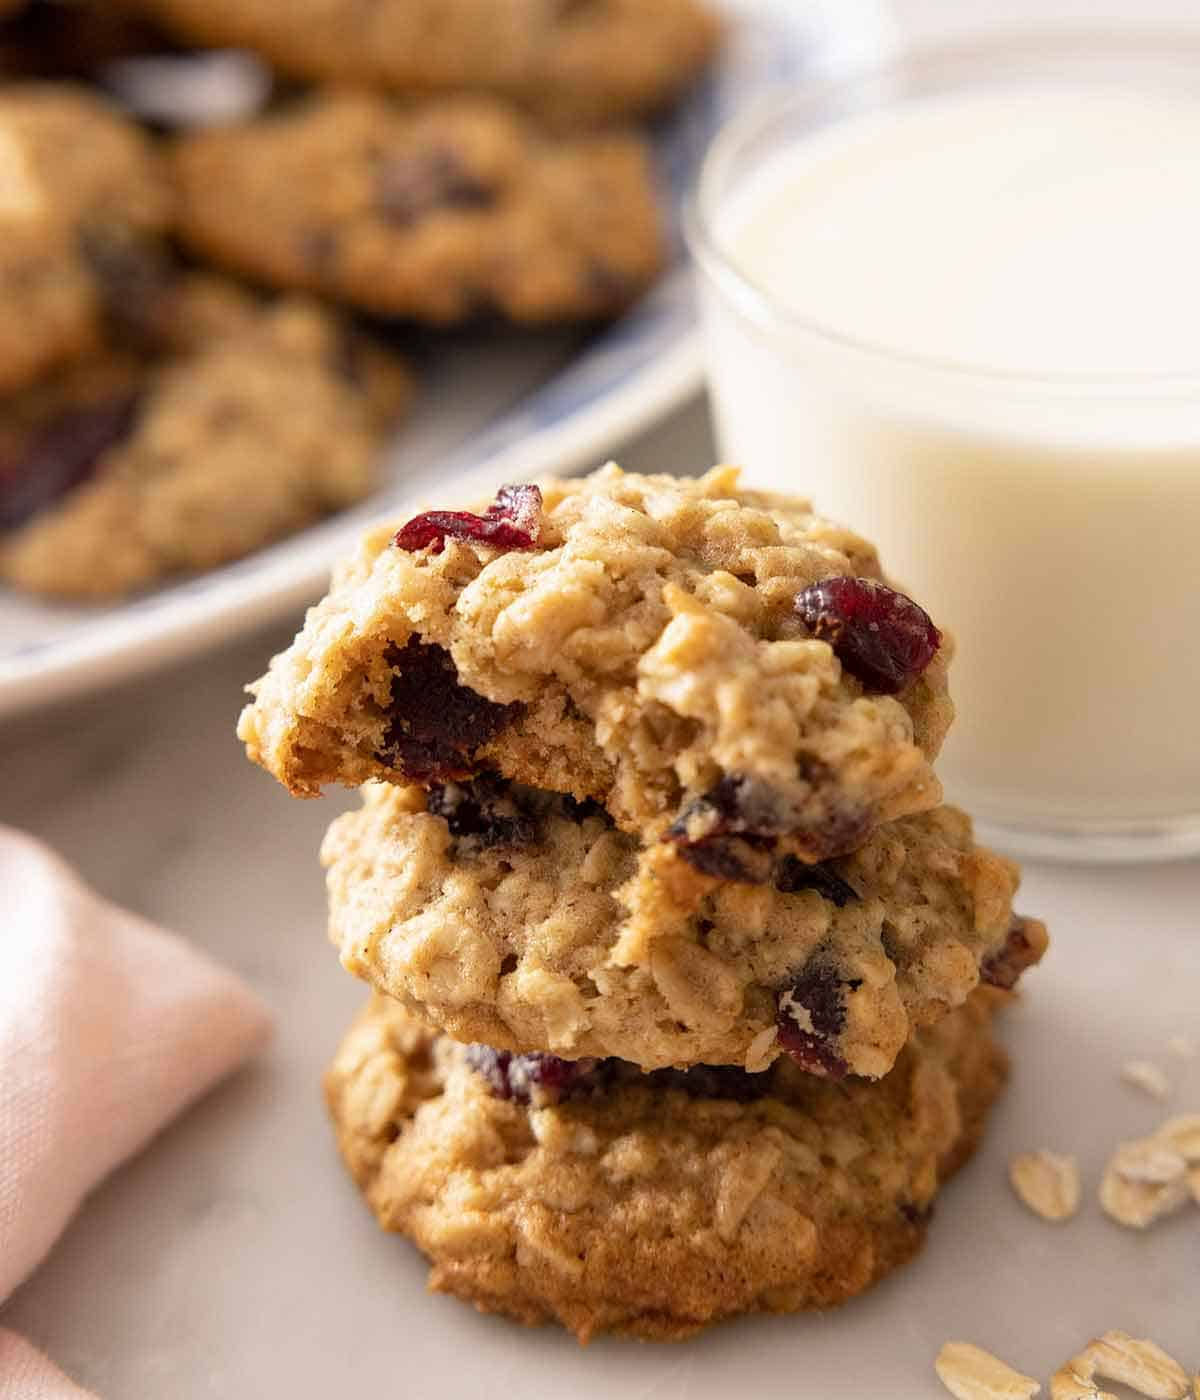 A stack of three oatmeal cranberry cookies with a bite taken from the top cookie.